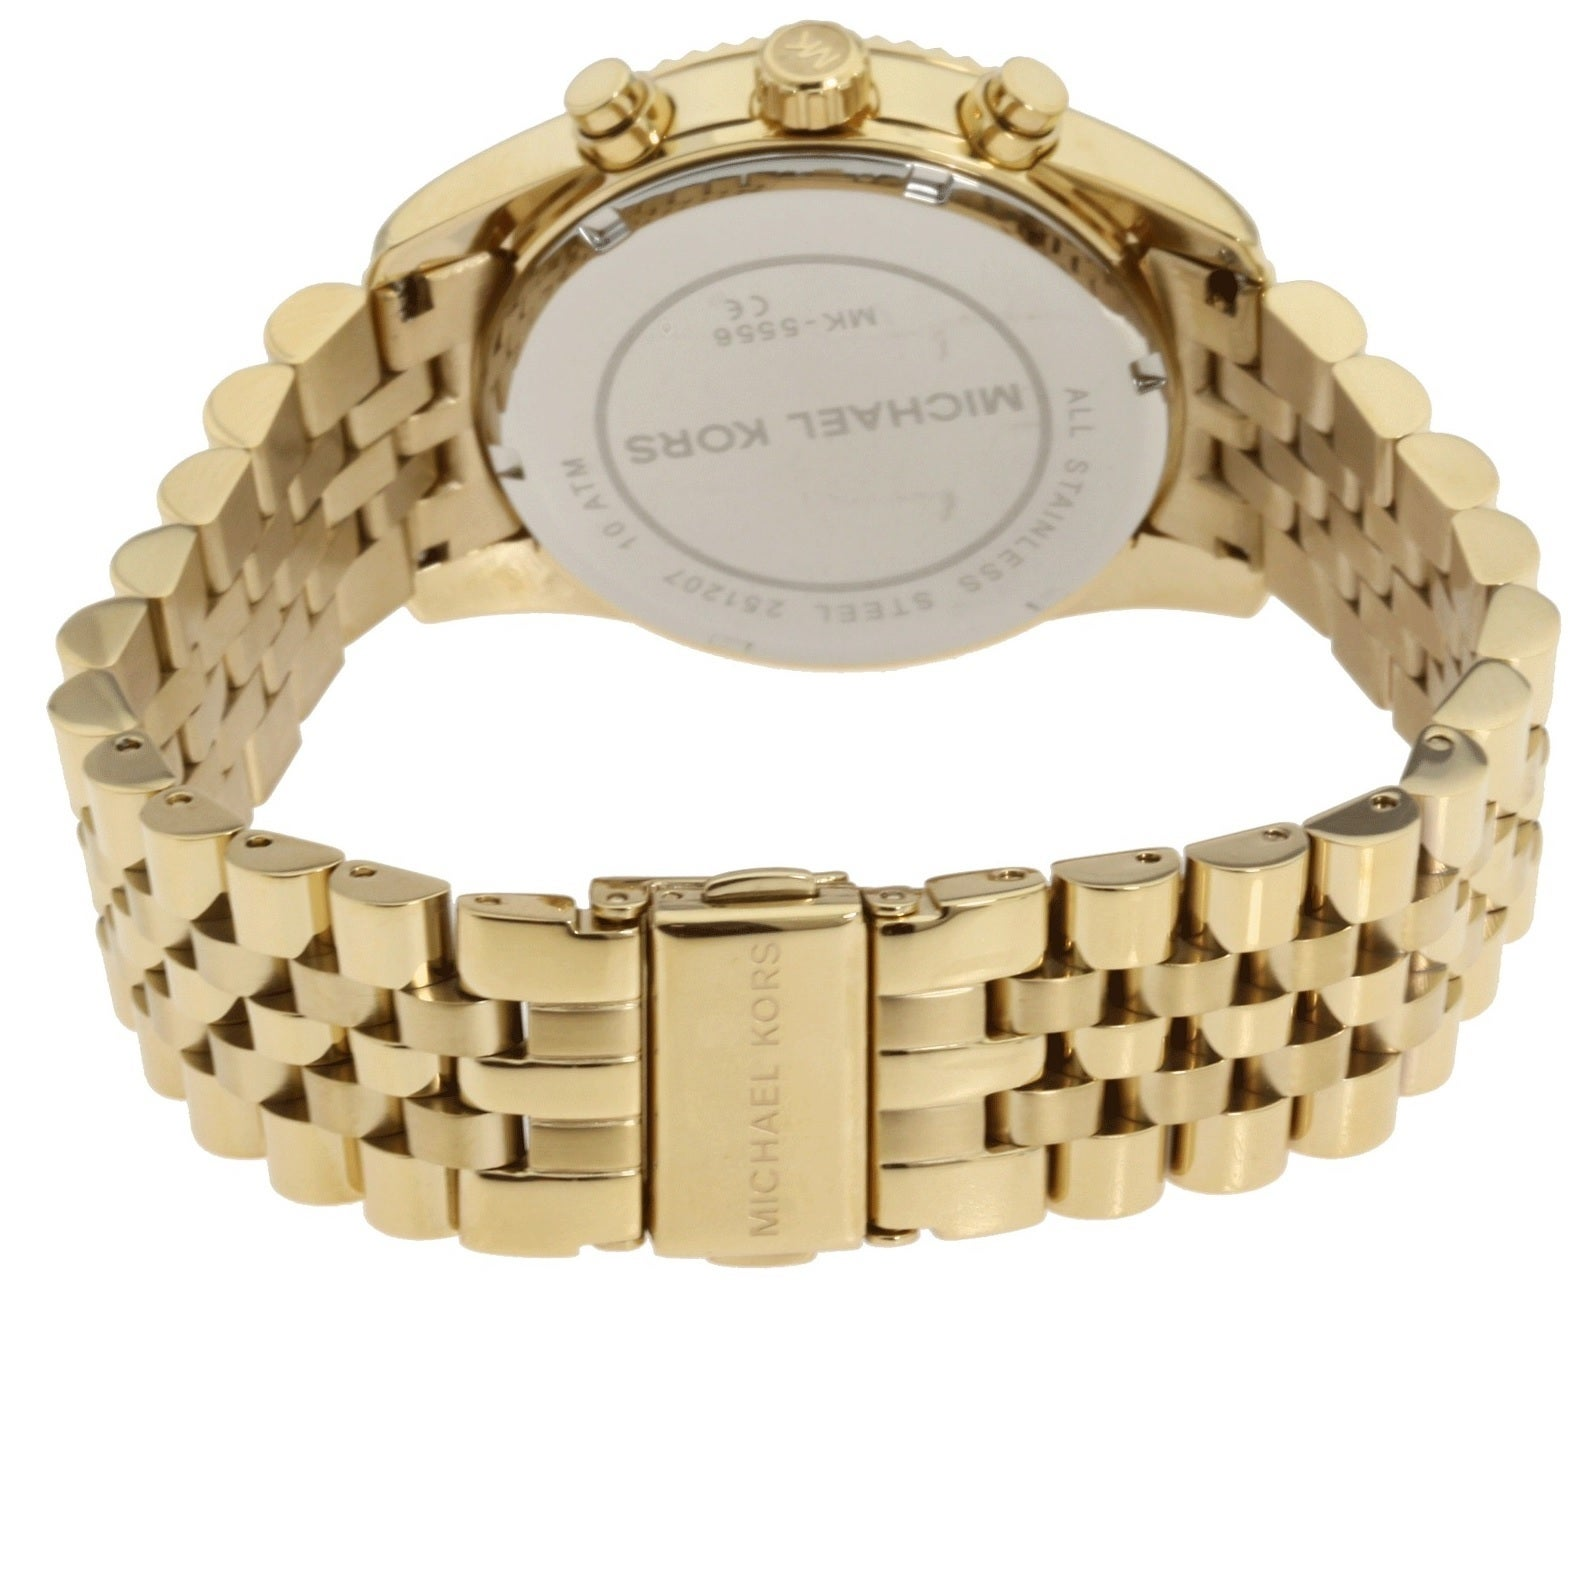 d533a4a3ead6 Shop Michael Kors Women s MK5556  Lexington  Chronograph Watch - Gold -  Free Shipping Today - Overstock - 7984537